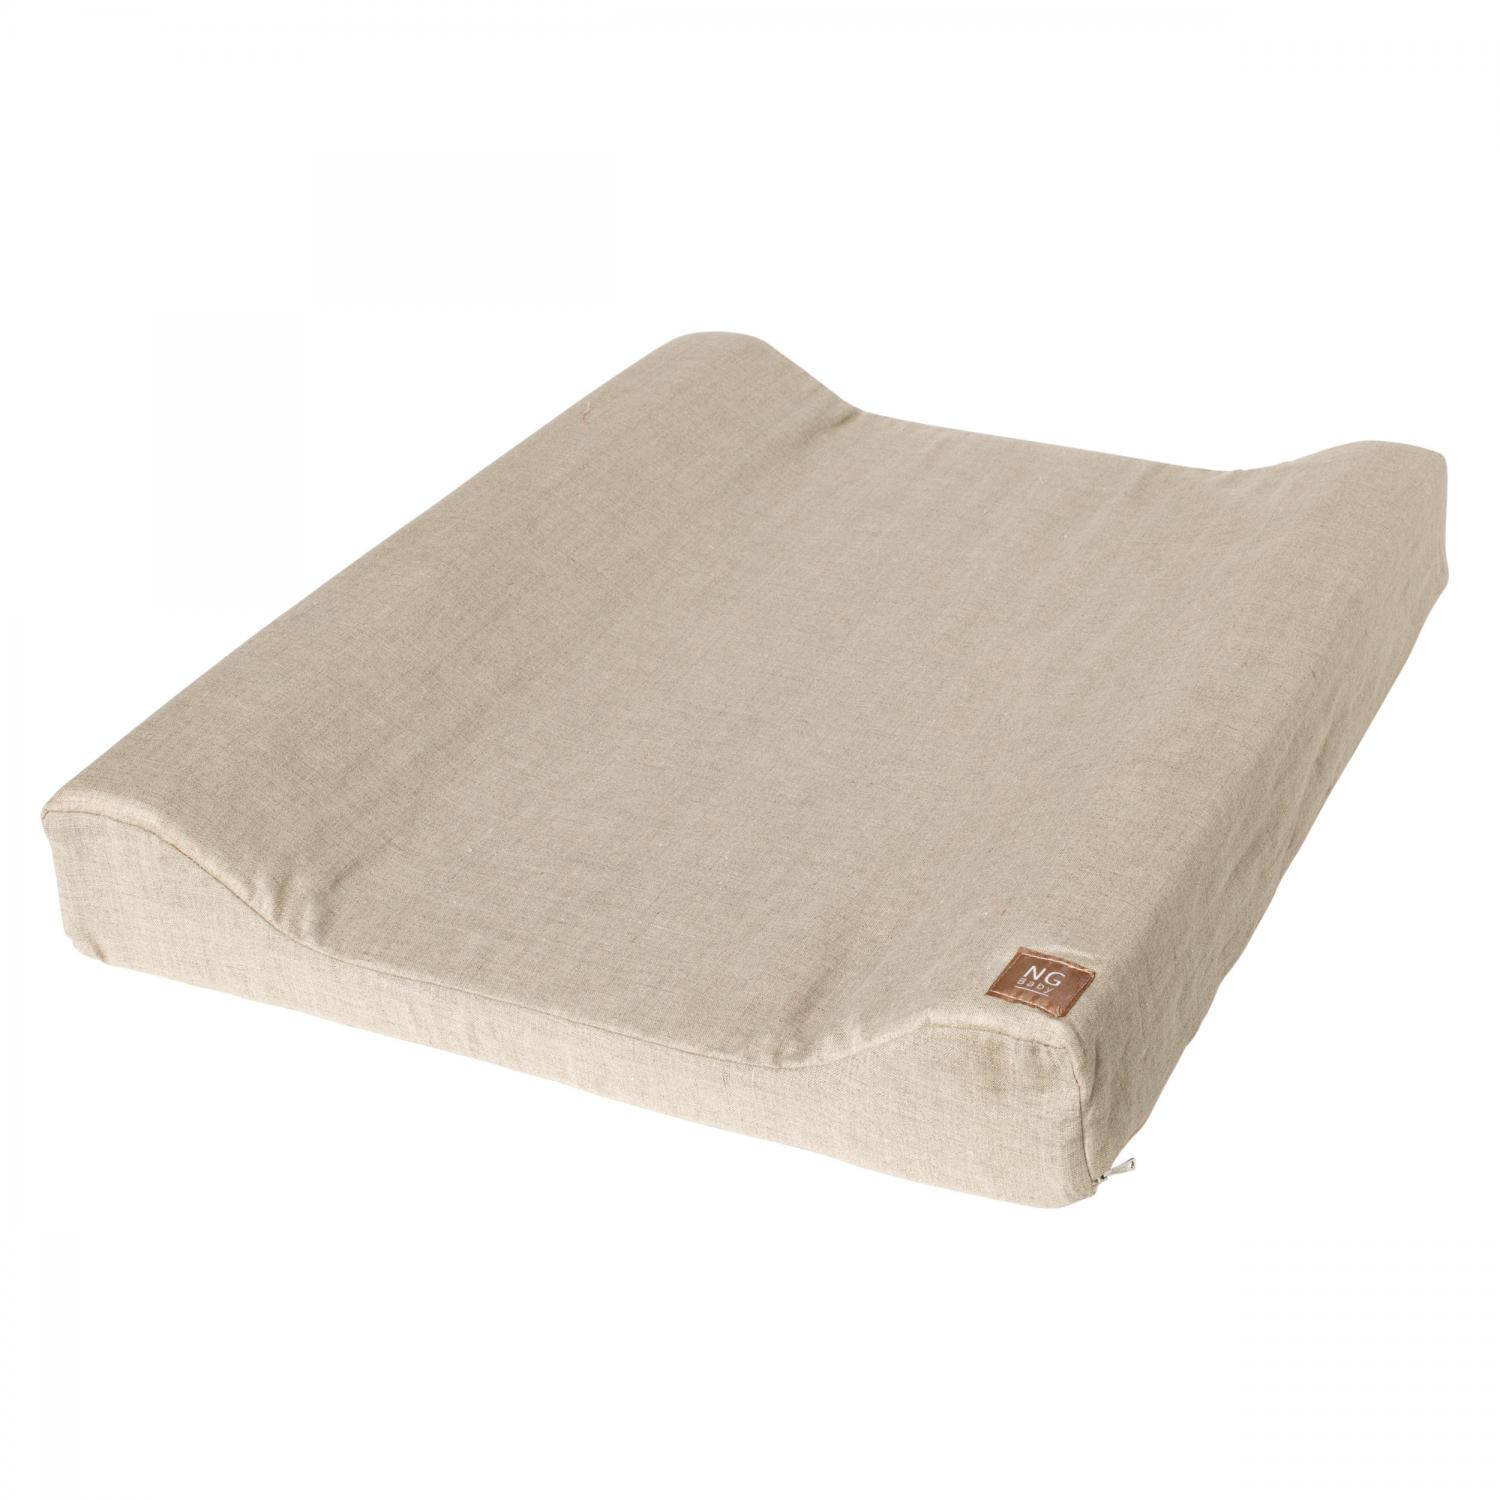 Changing pad standard | Natural | Mood